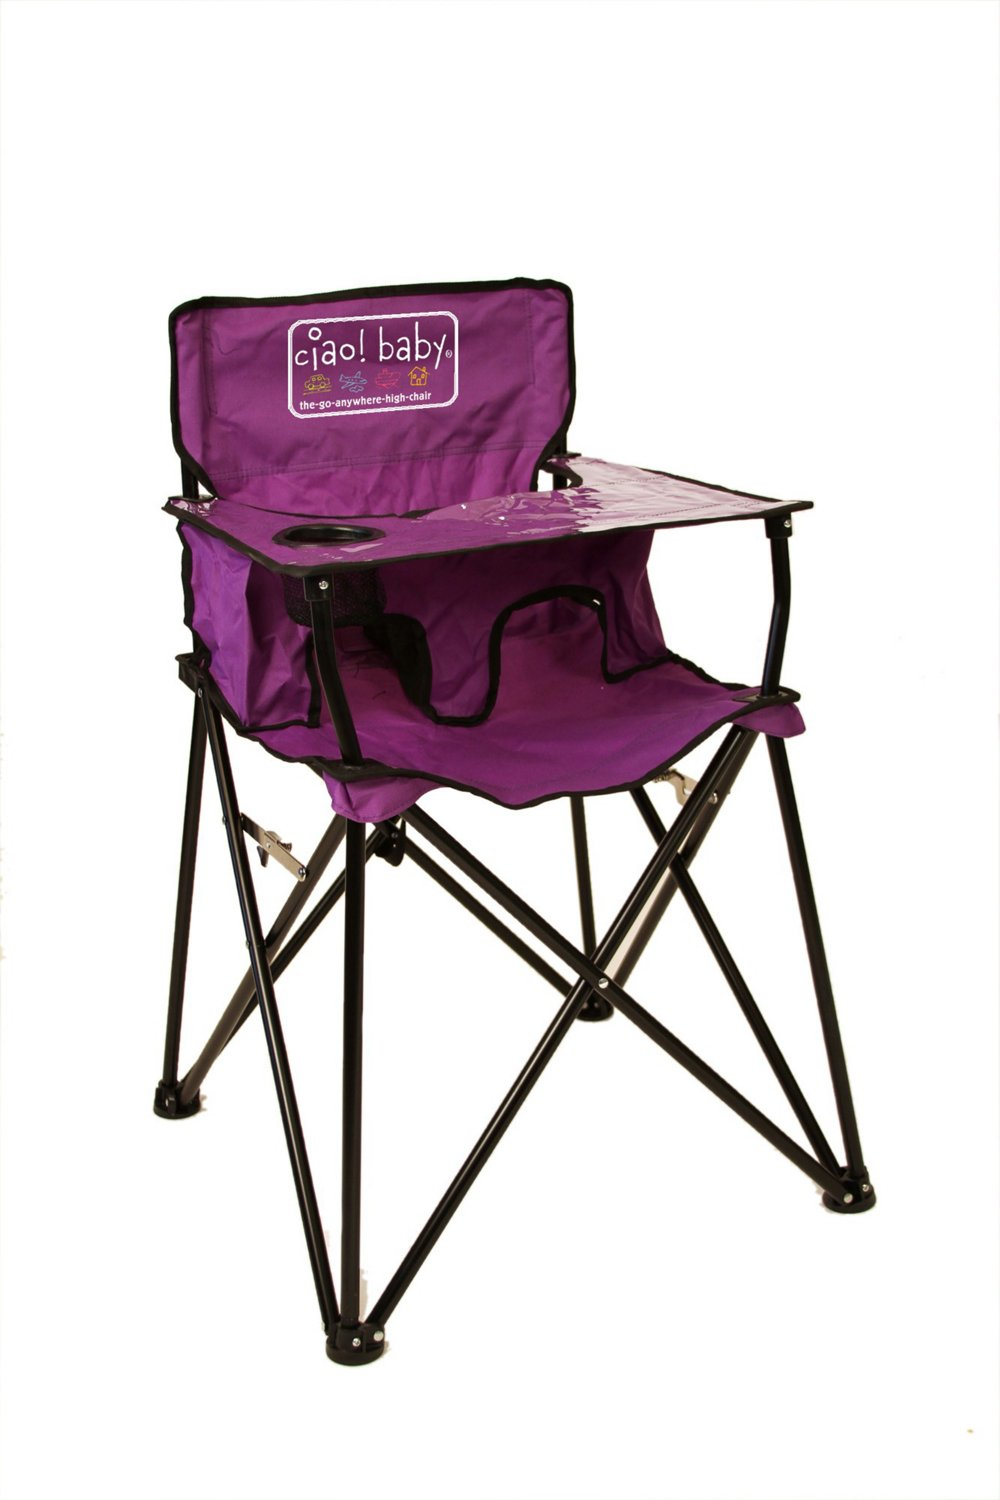 Ciao Baby Portable Go Anywhere High Chair